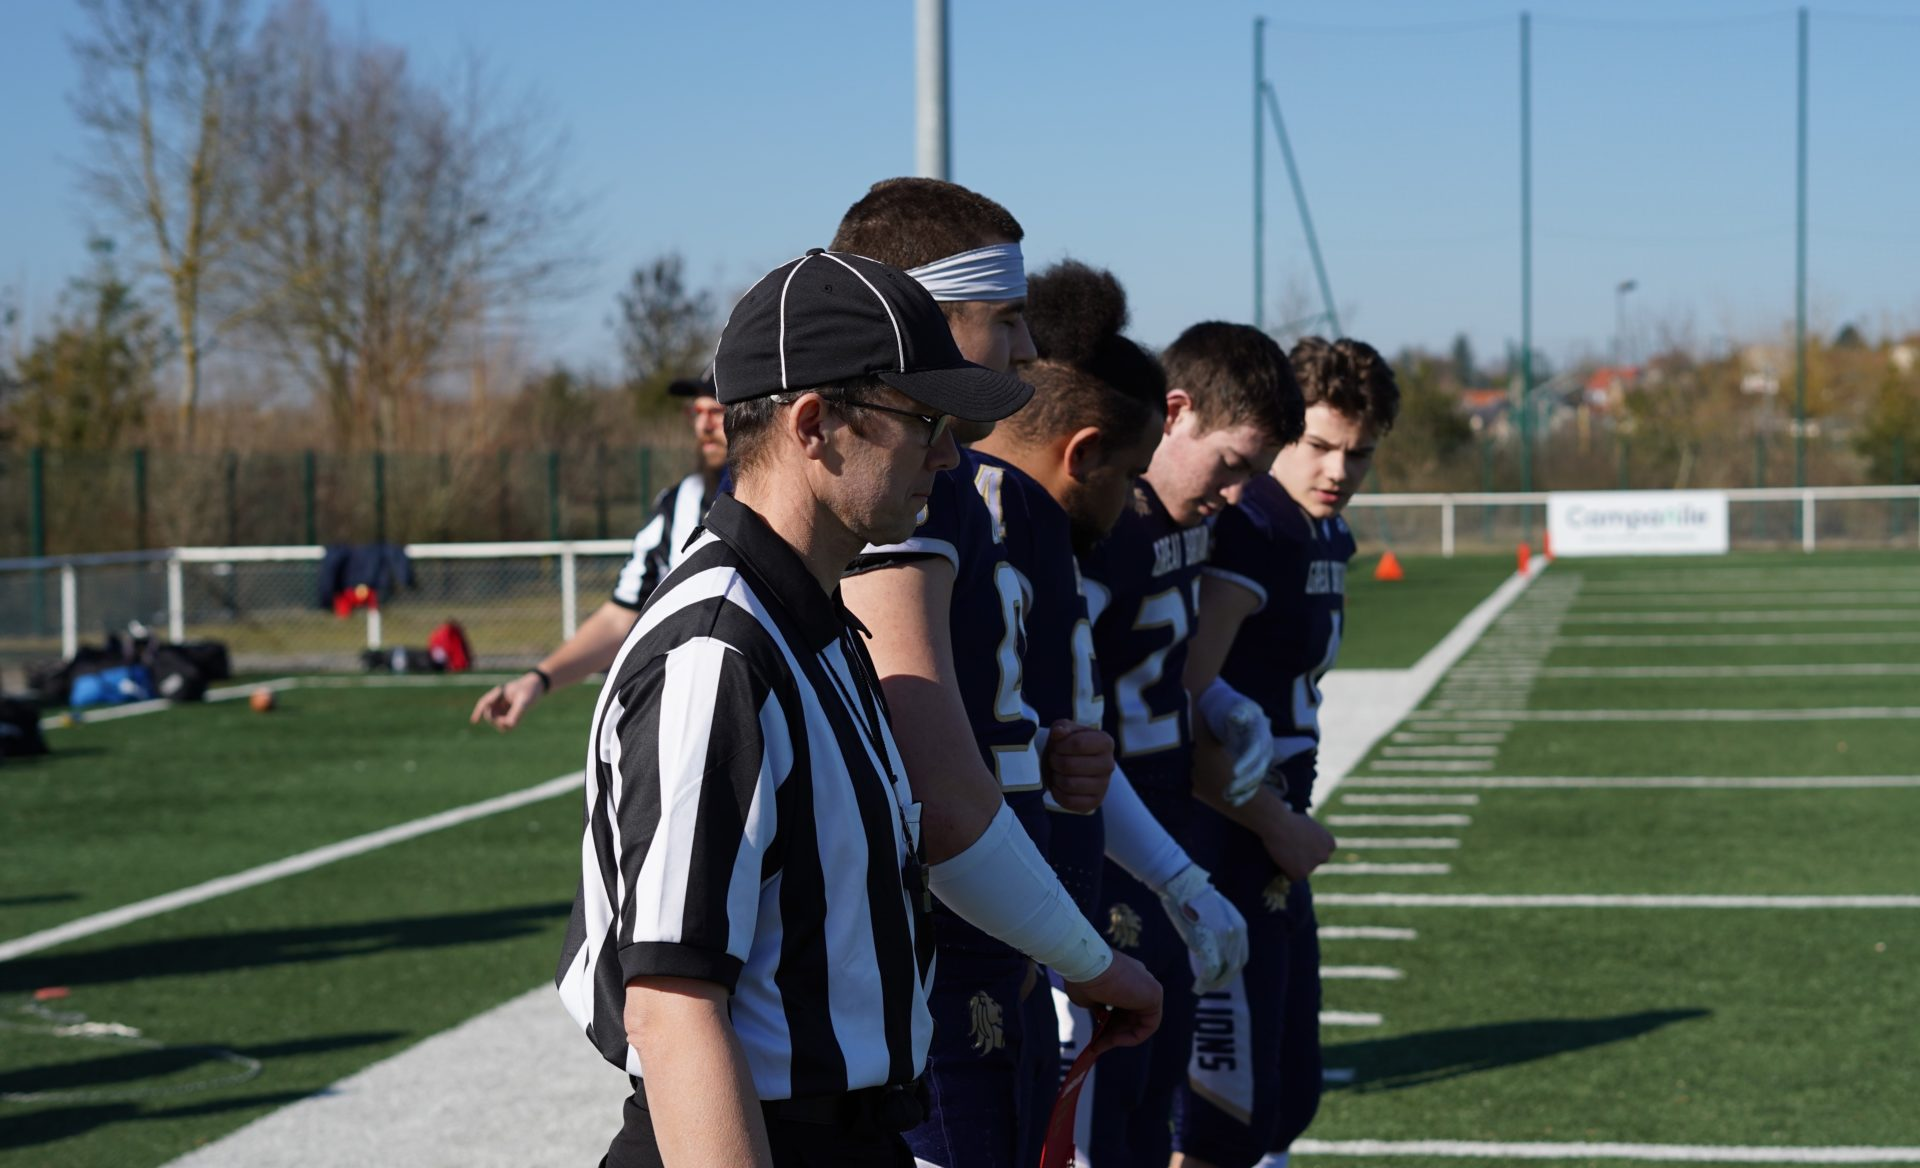 Return to play and referees